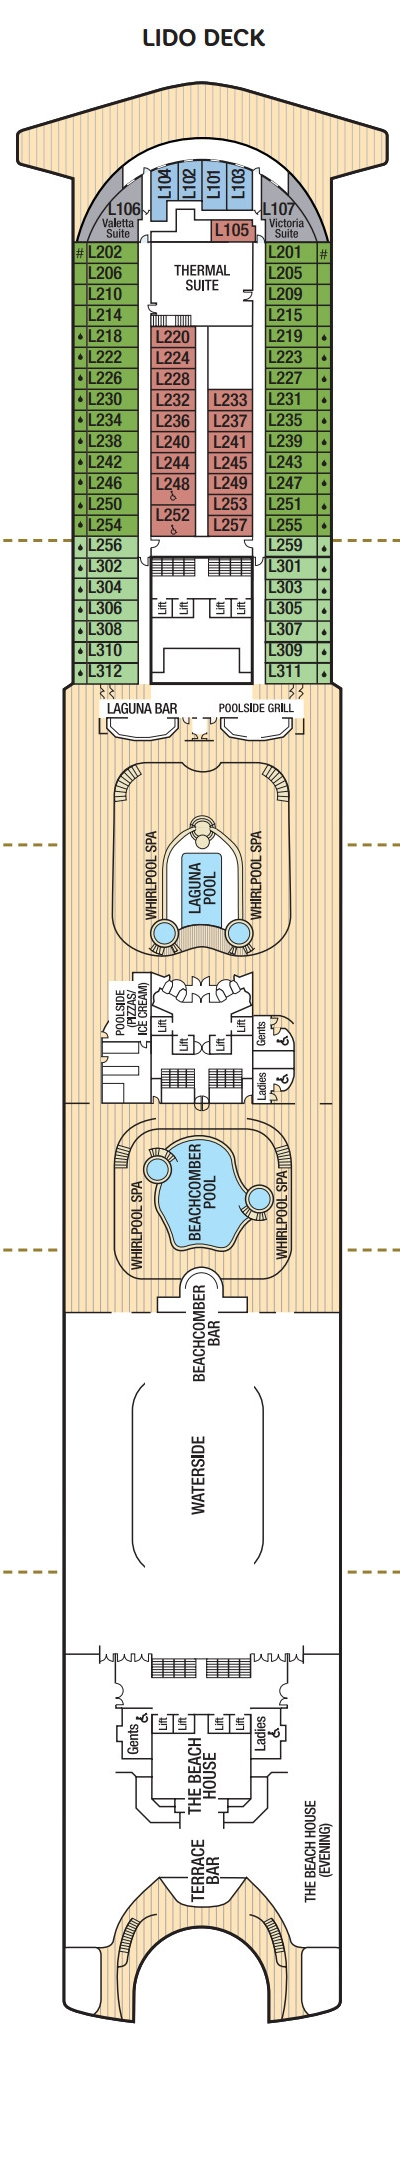 Ventura Lido Deck layout